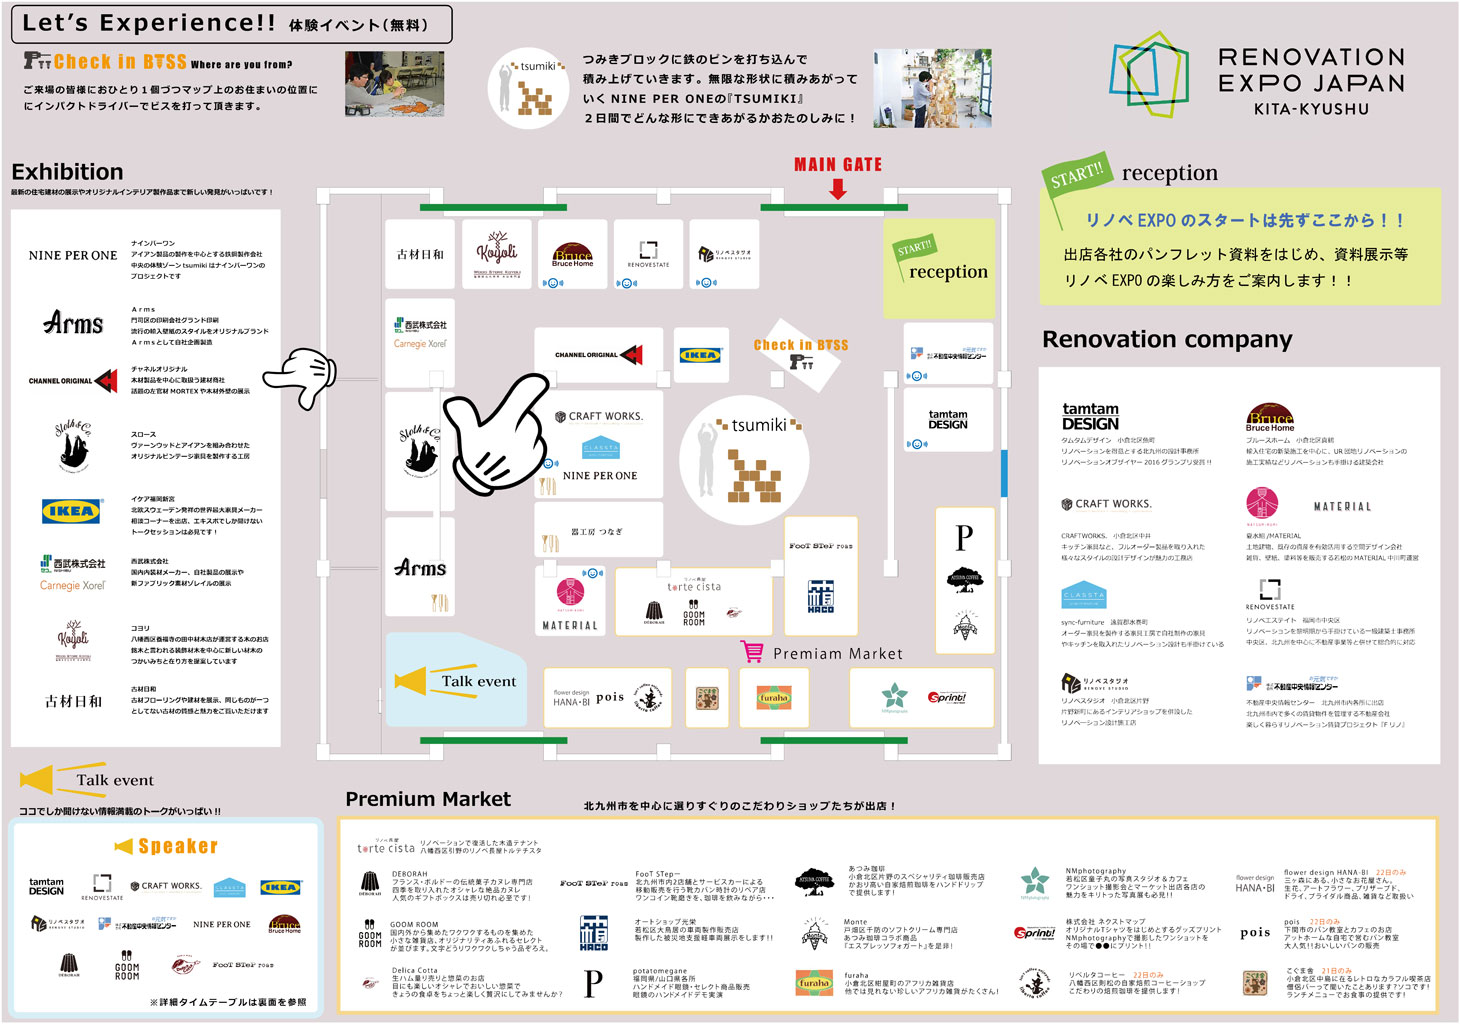 RENOVATION EXPO JAPAN 2017